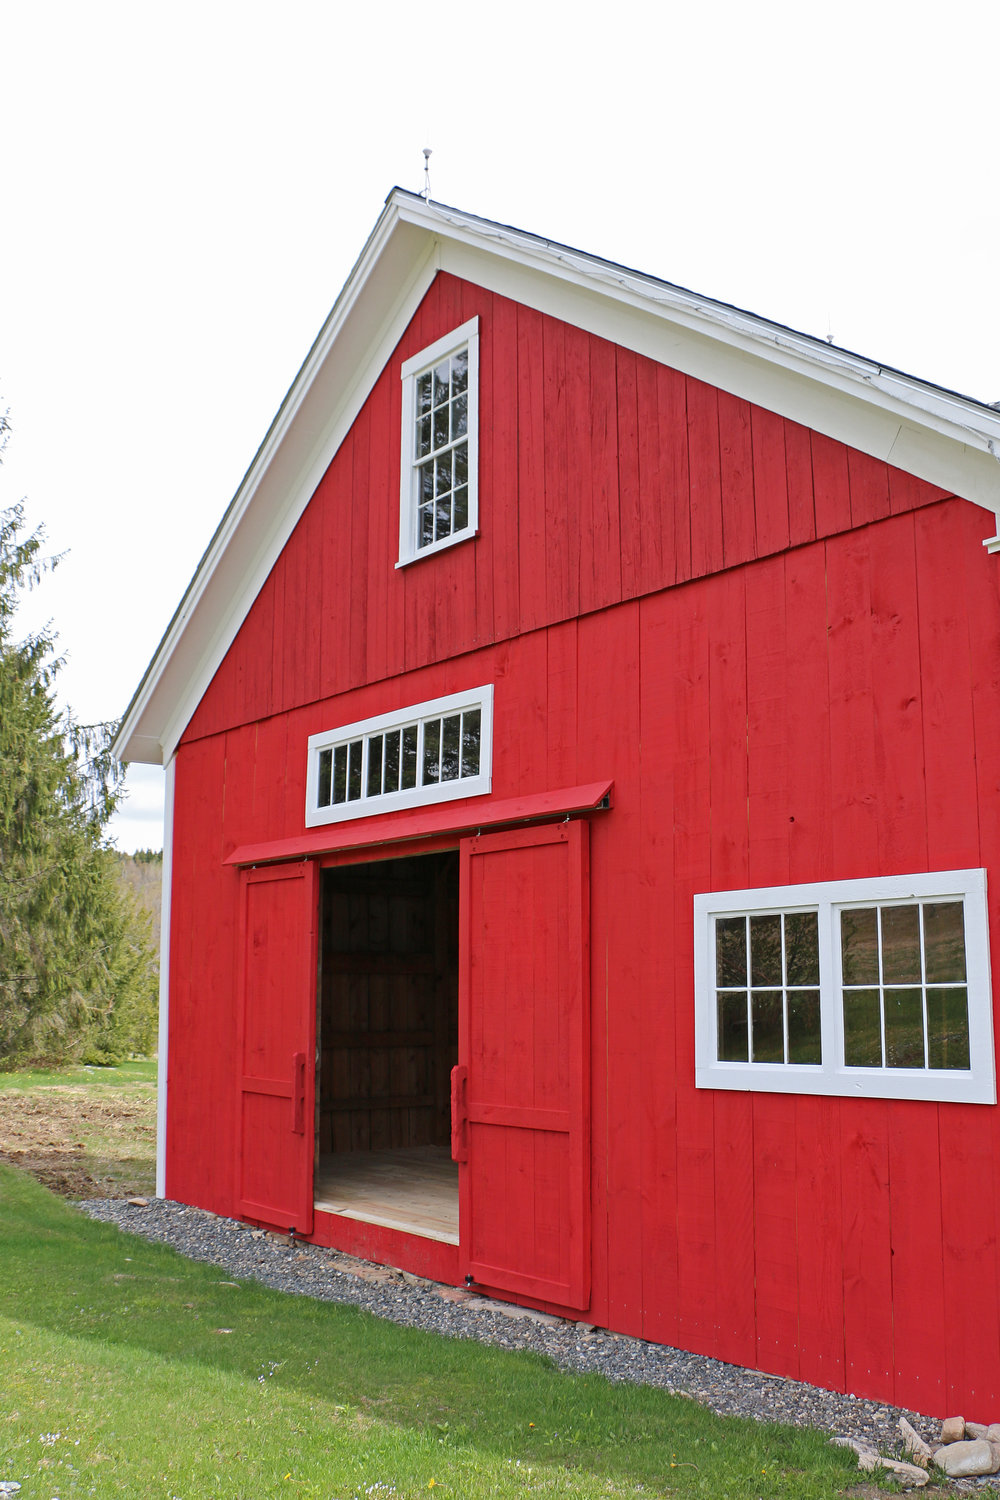 jim l side barn.JPG